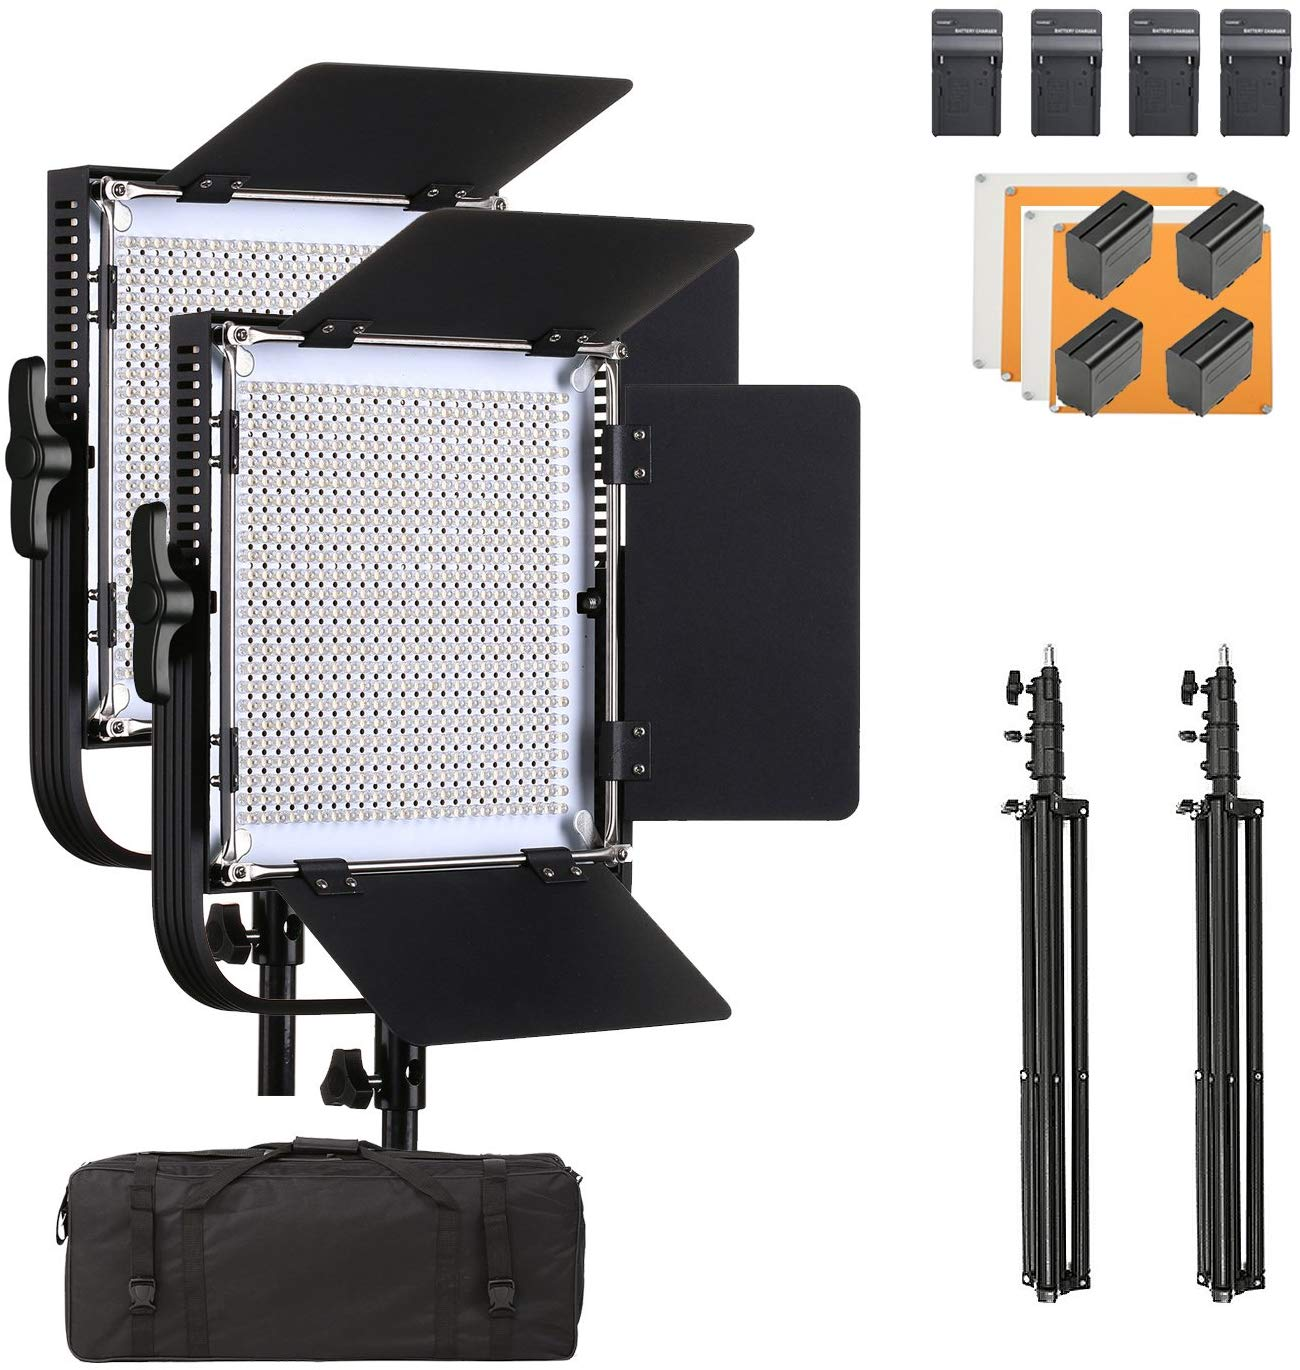 Led Light Pro Metal Dimmable Bi-Color 3200K-5600K Light for Video/Photography(2 Pack)